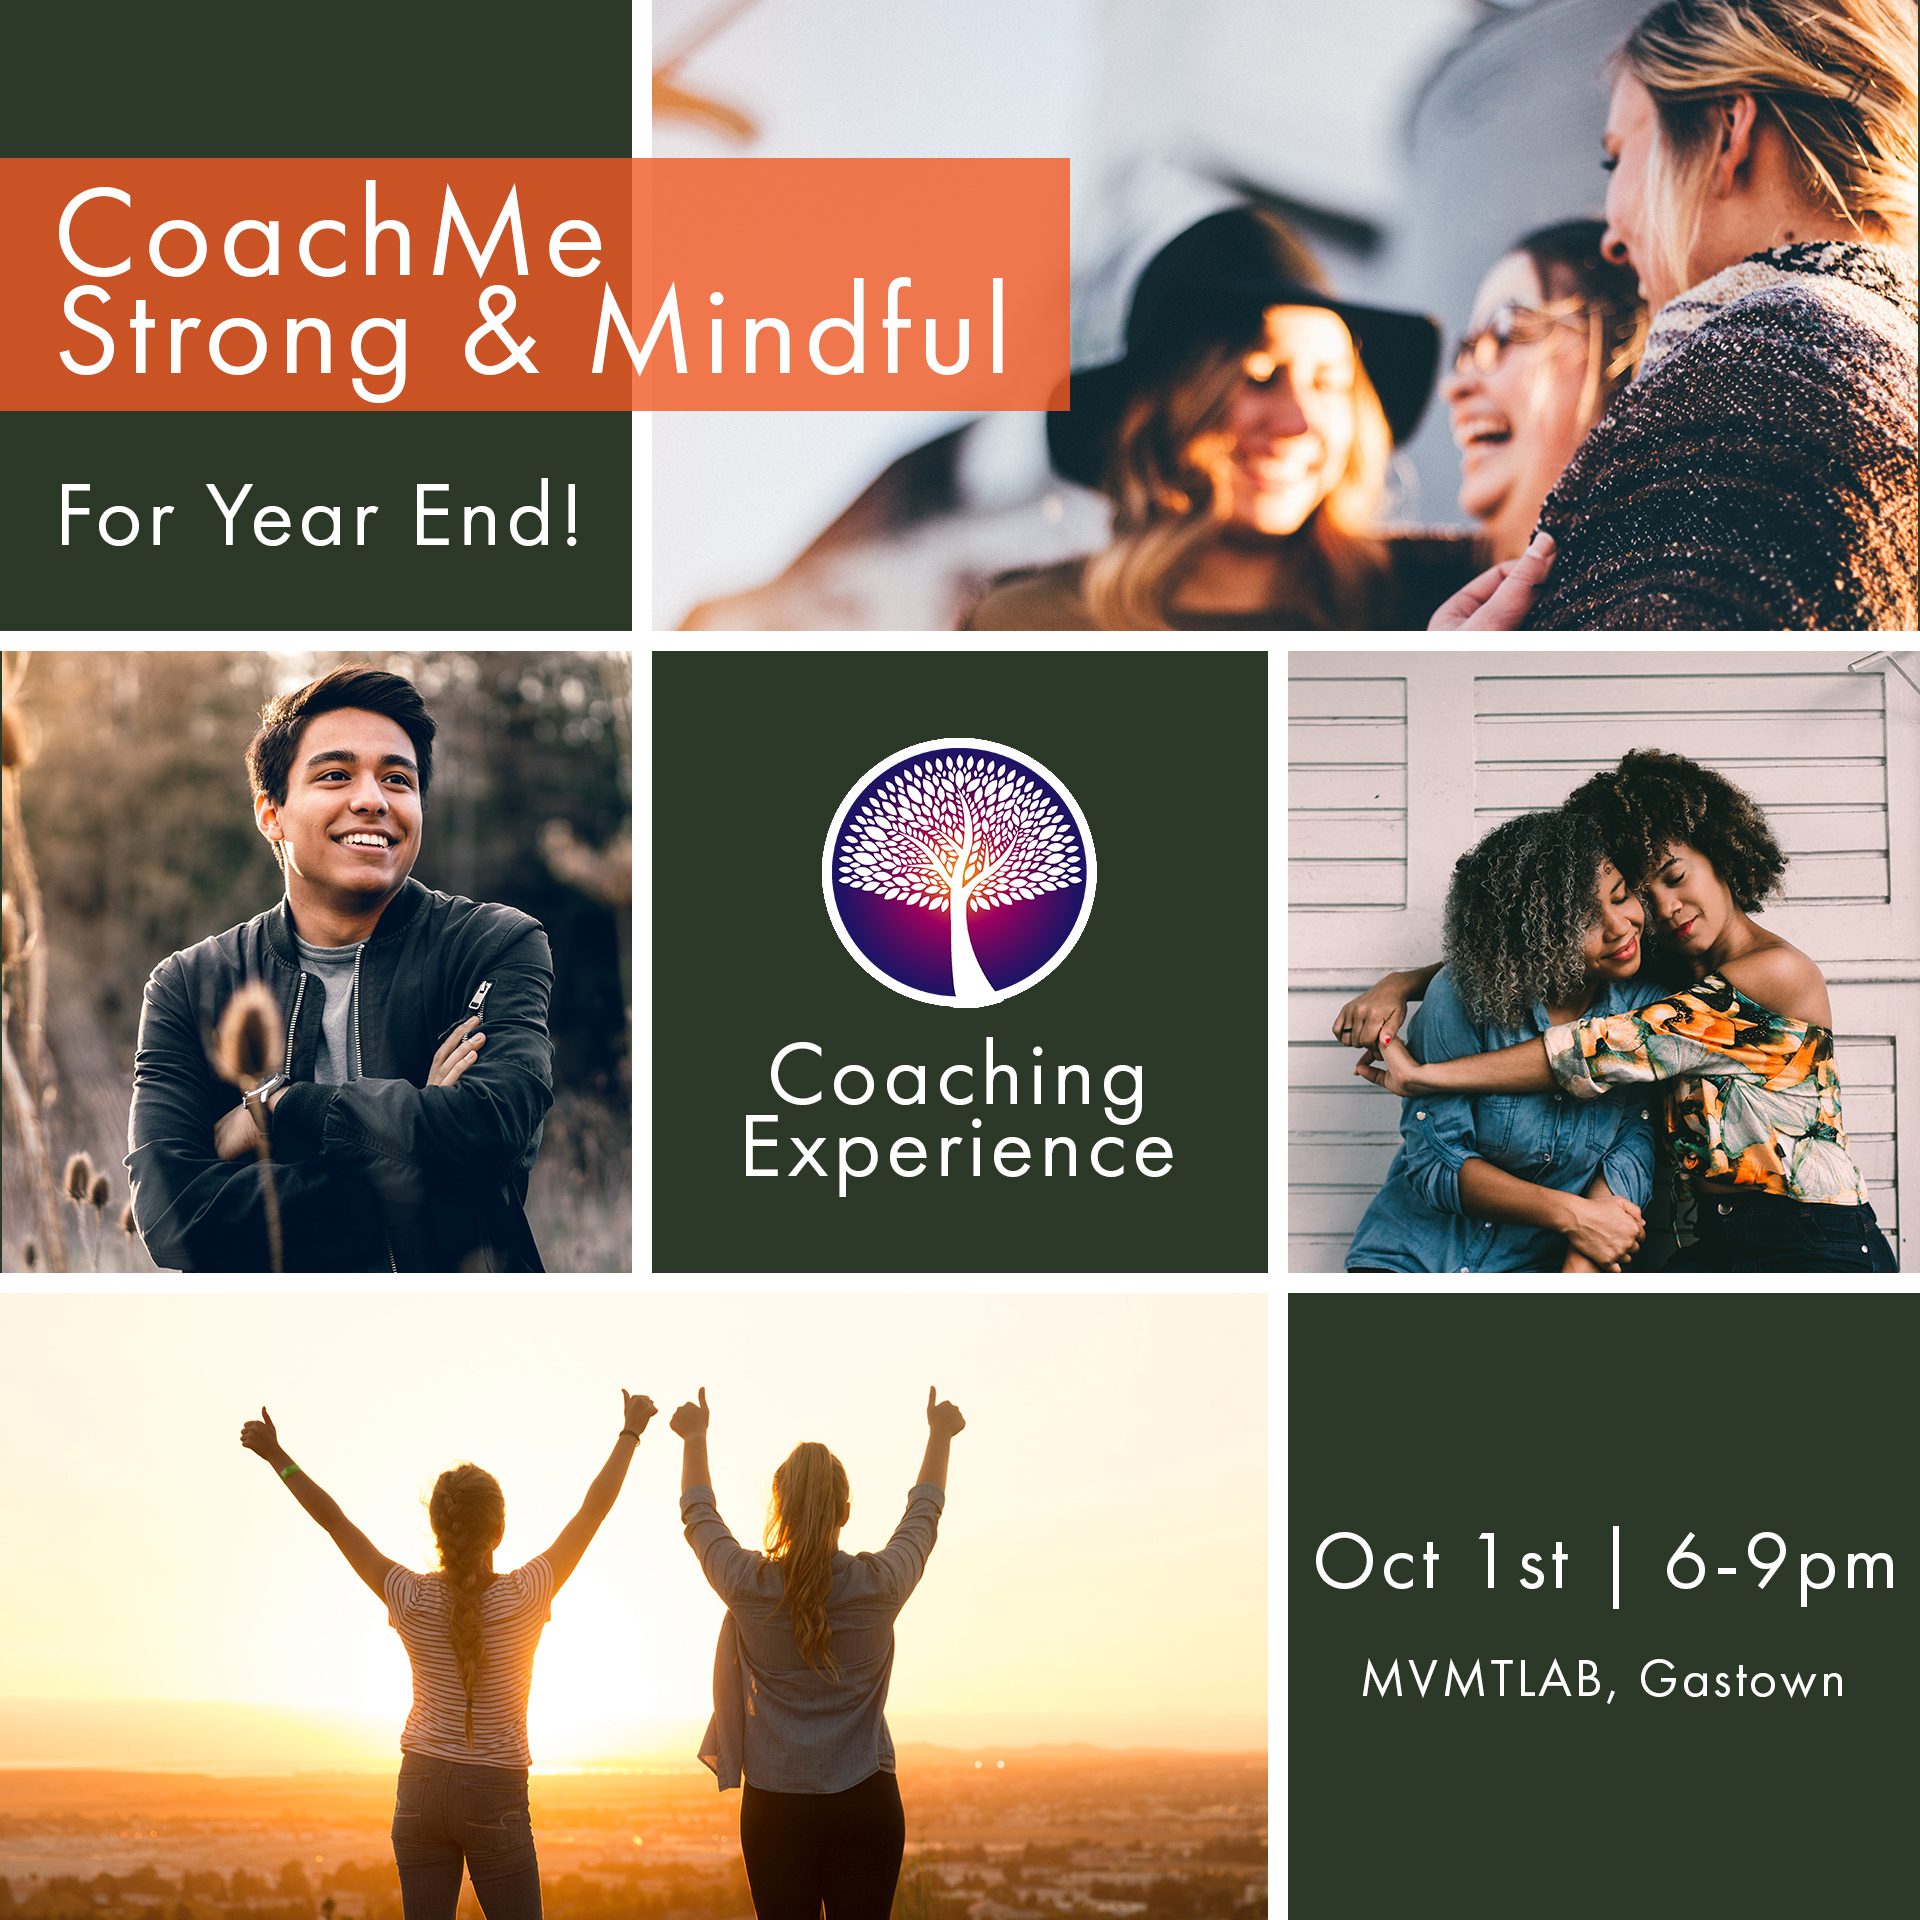 Coaching Events - CoachMe Strong & Mindful For Year End! - CoachMe Vancouver